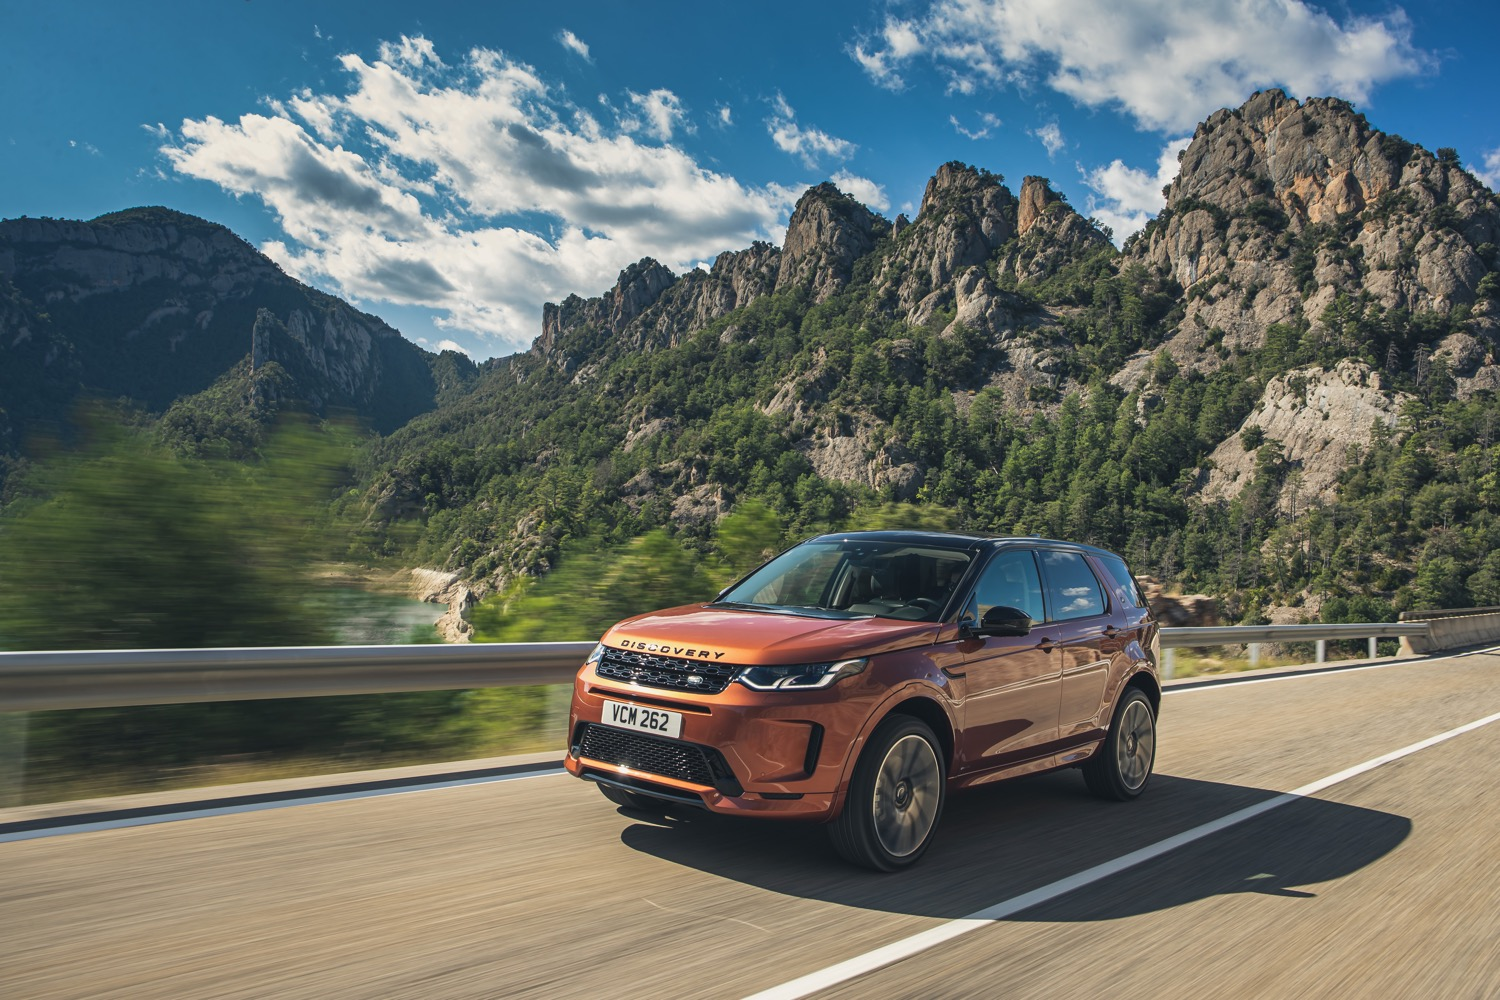 2020_land_rover_discovery_sport_facelift_02